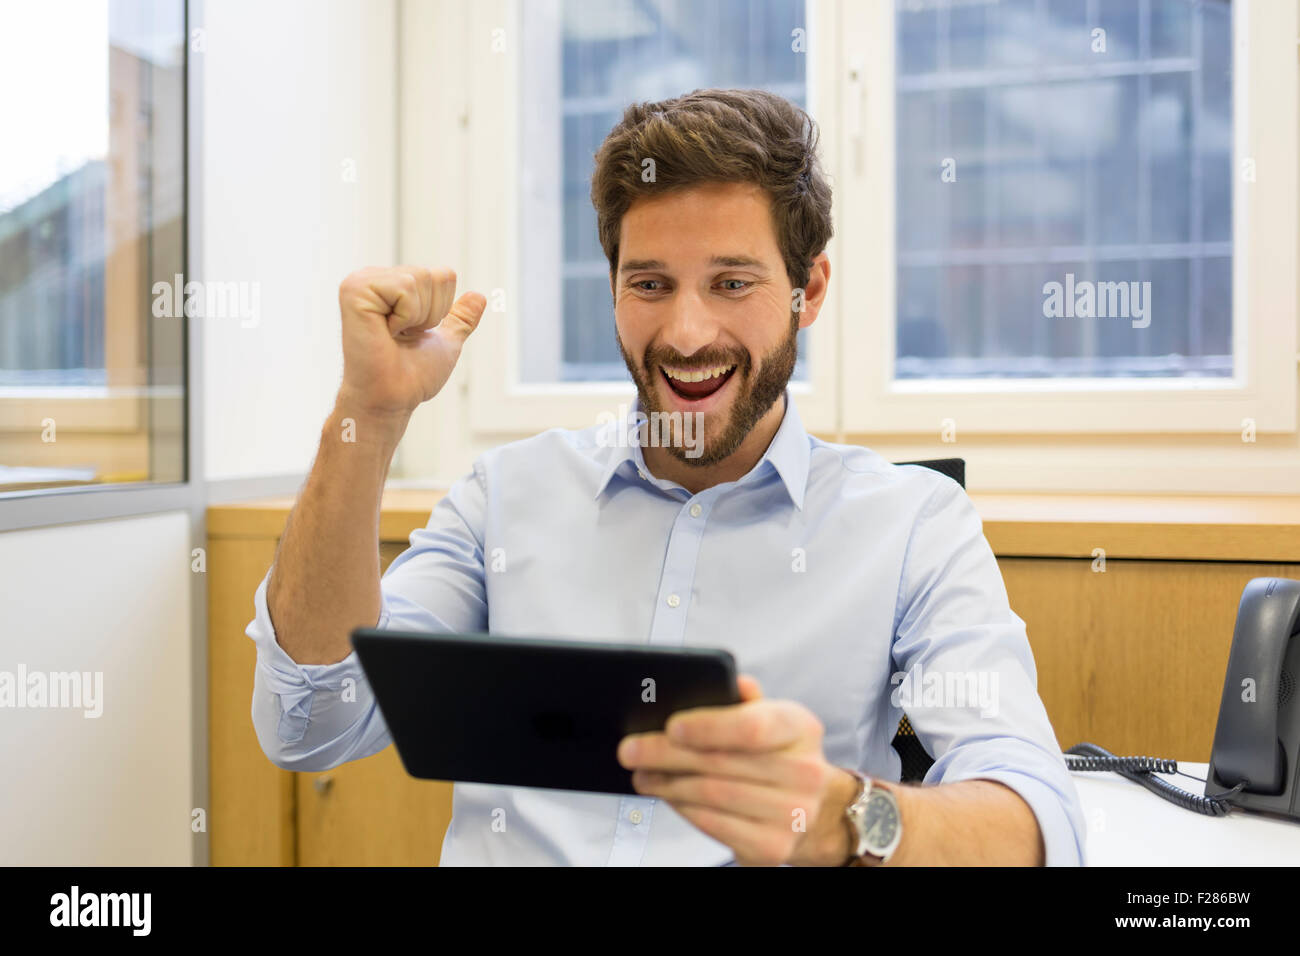 Cheering businessman with arms up using digital tablet in office Banque D'Images